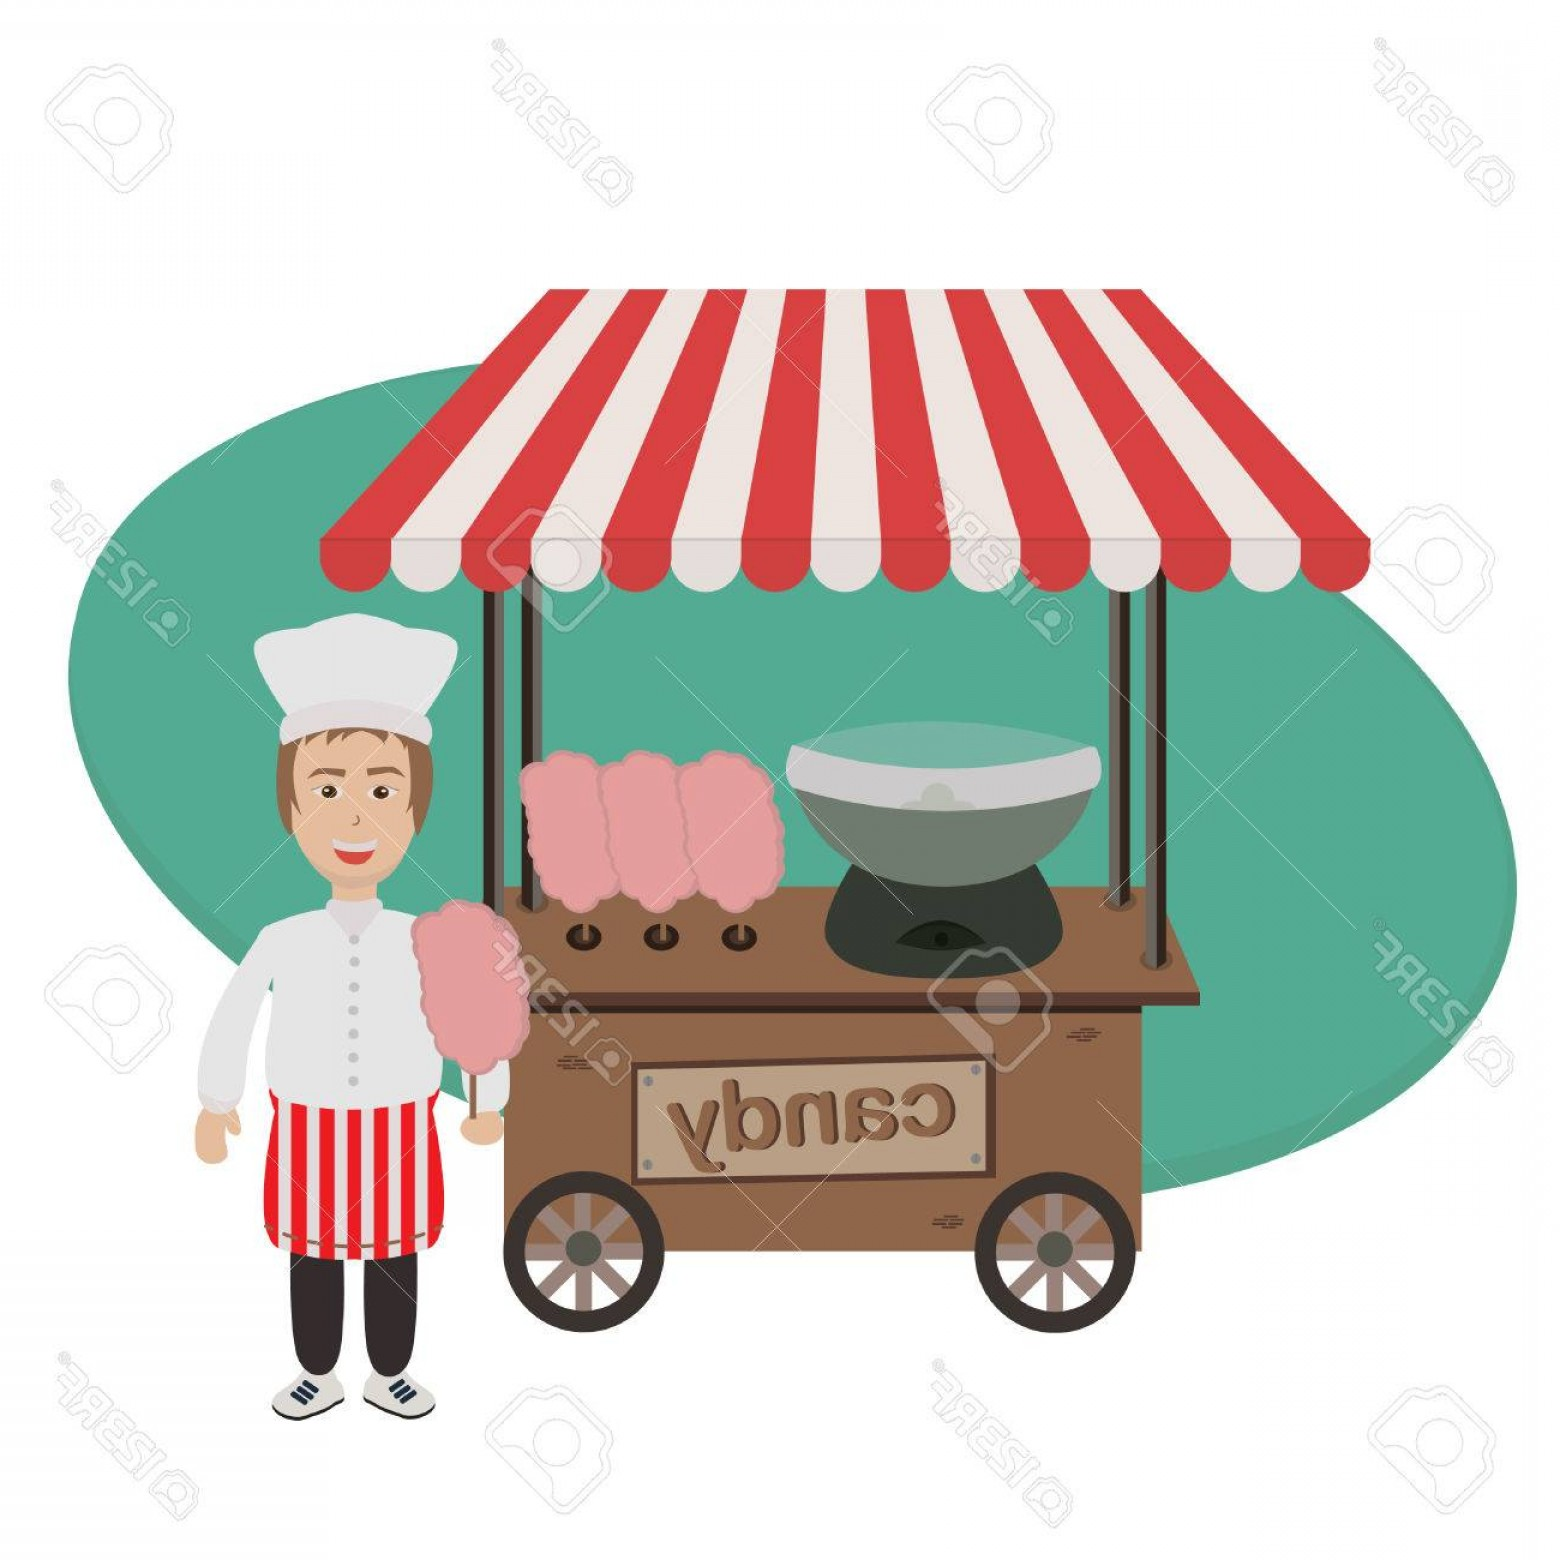 Candy Seller Vector: Photostock Vector Seller Of Cotton Candy And Trolley With Equipment For Cooking